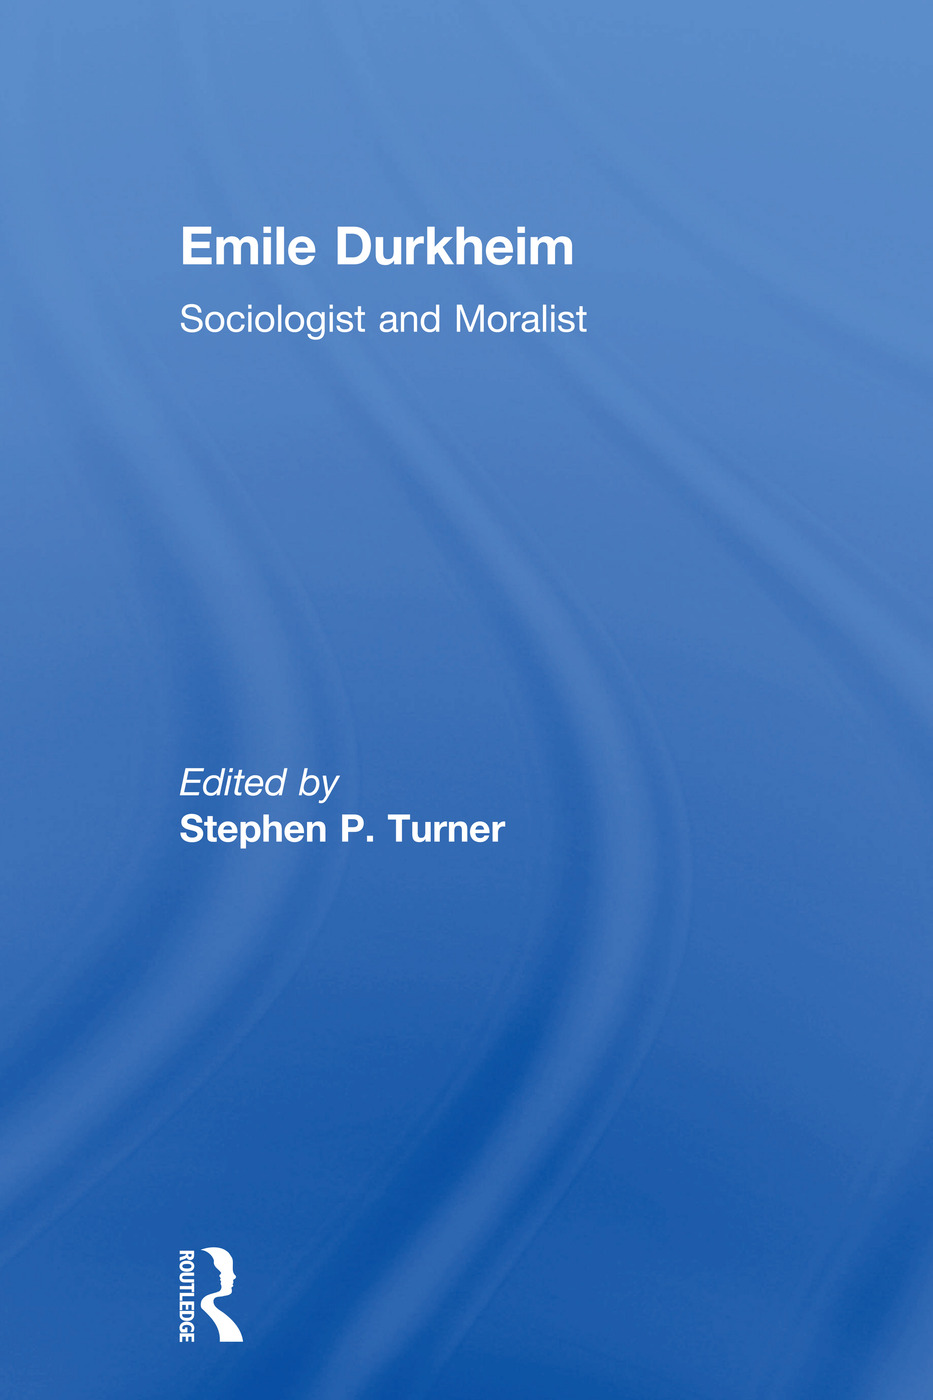 Emile Durkheim: Sociologist and Moralist, 1st Edition (Paperback) book cover